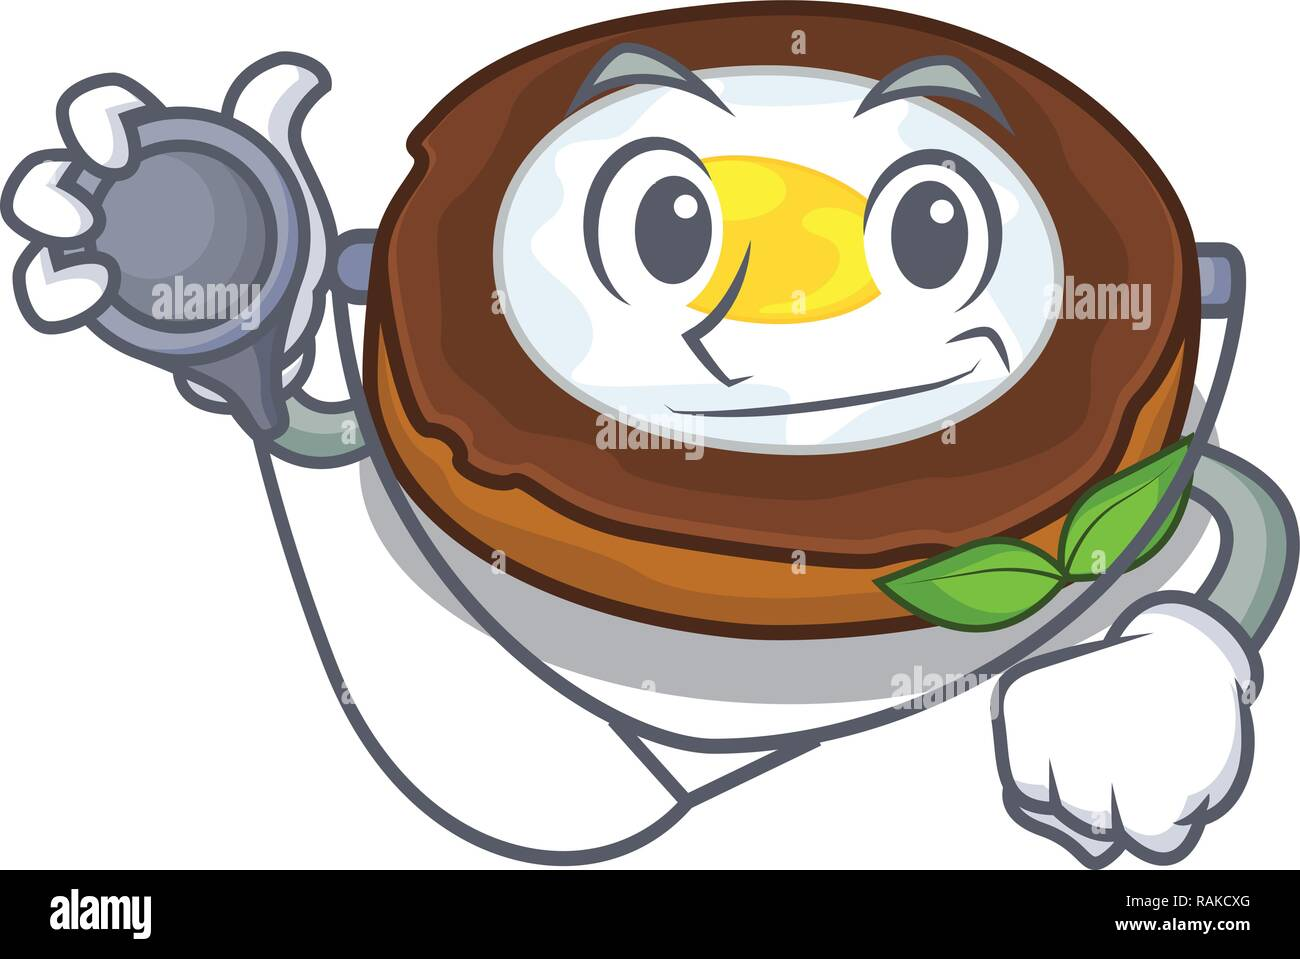 Doctor egg scotch cartoons are ready served - Stock Vector